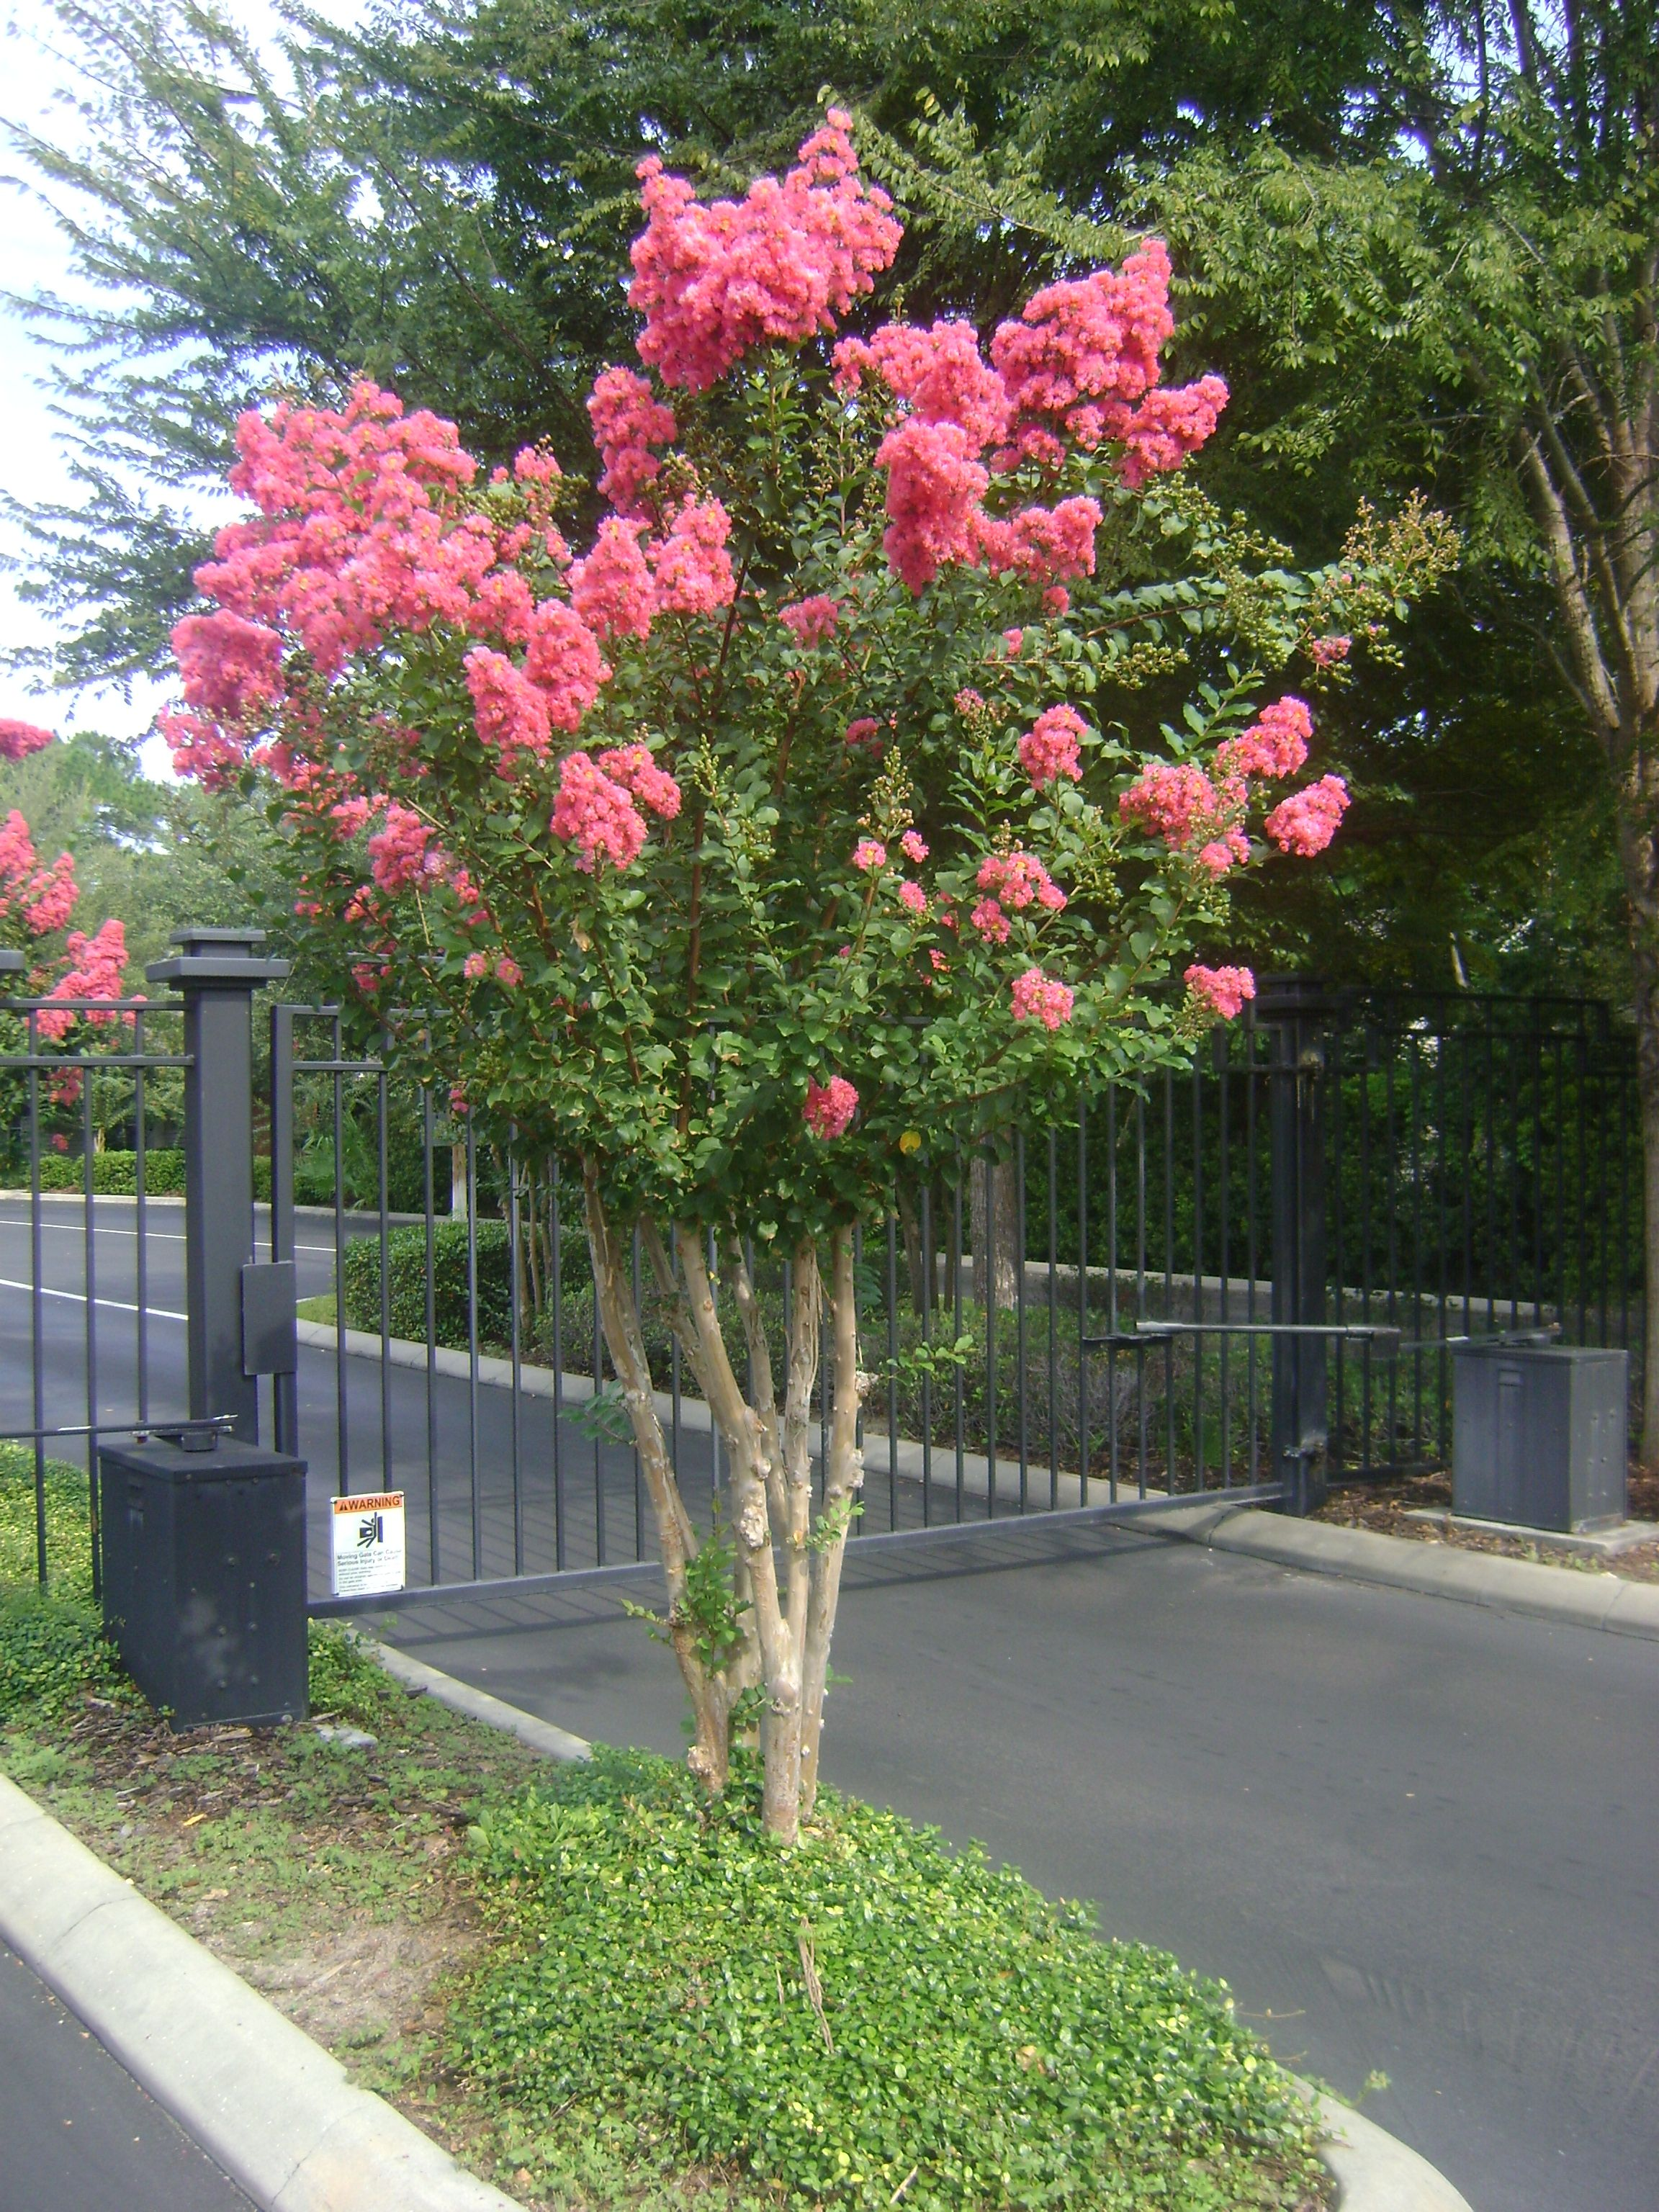 Myrtle buy crepe myrtle trees for sale in orlando for Small garden trees for sale